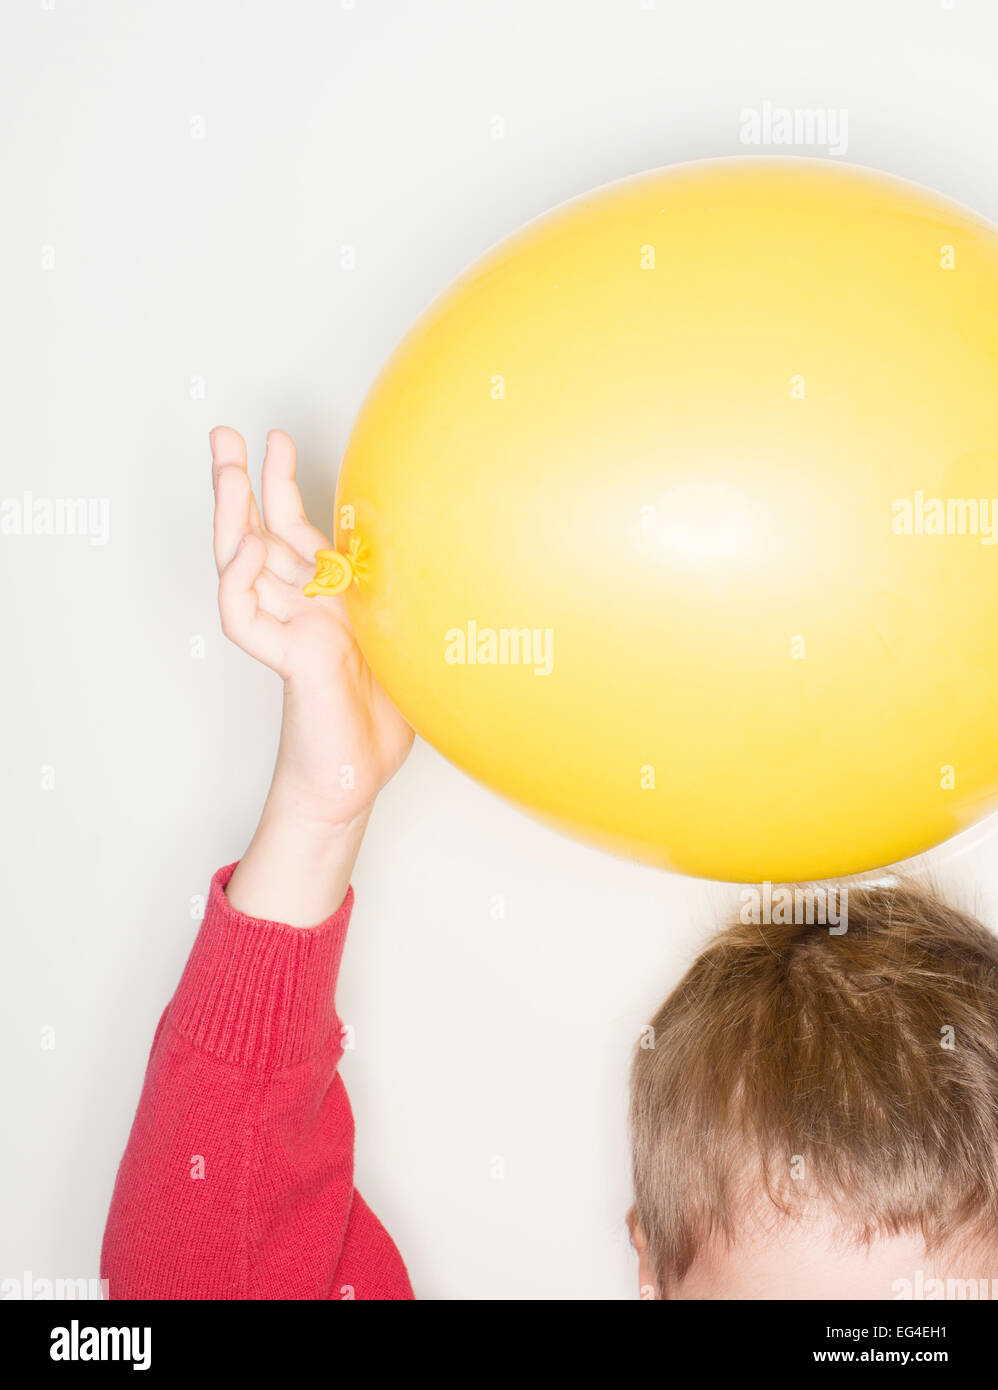 Child holding yellow balloon over hair. Fun childhood science experiment with electricity. - Stock Image